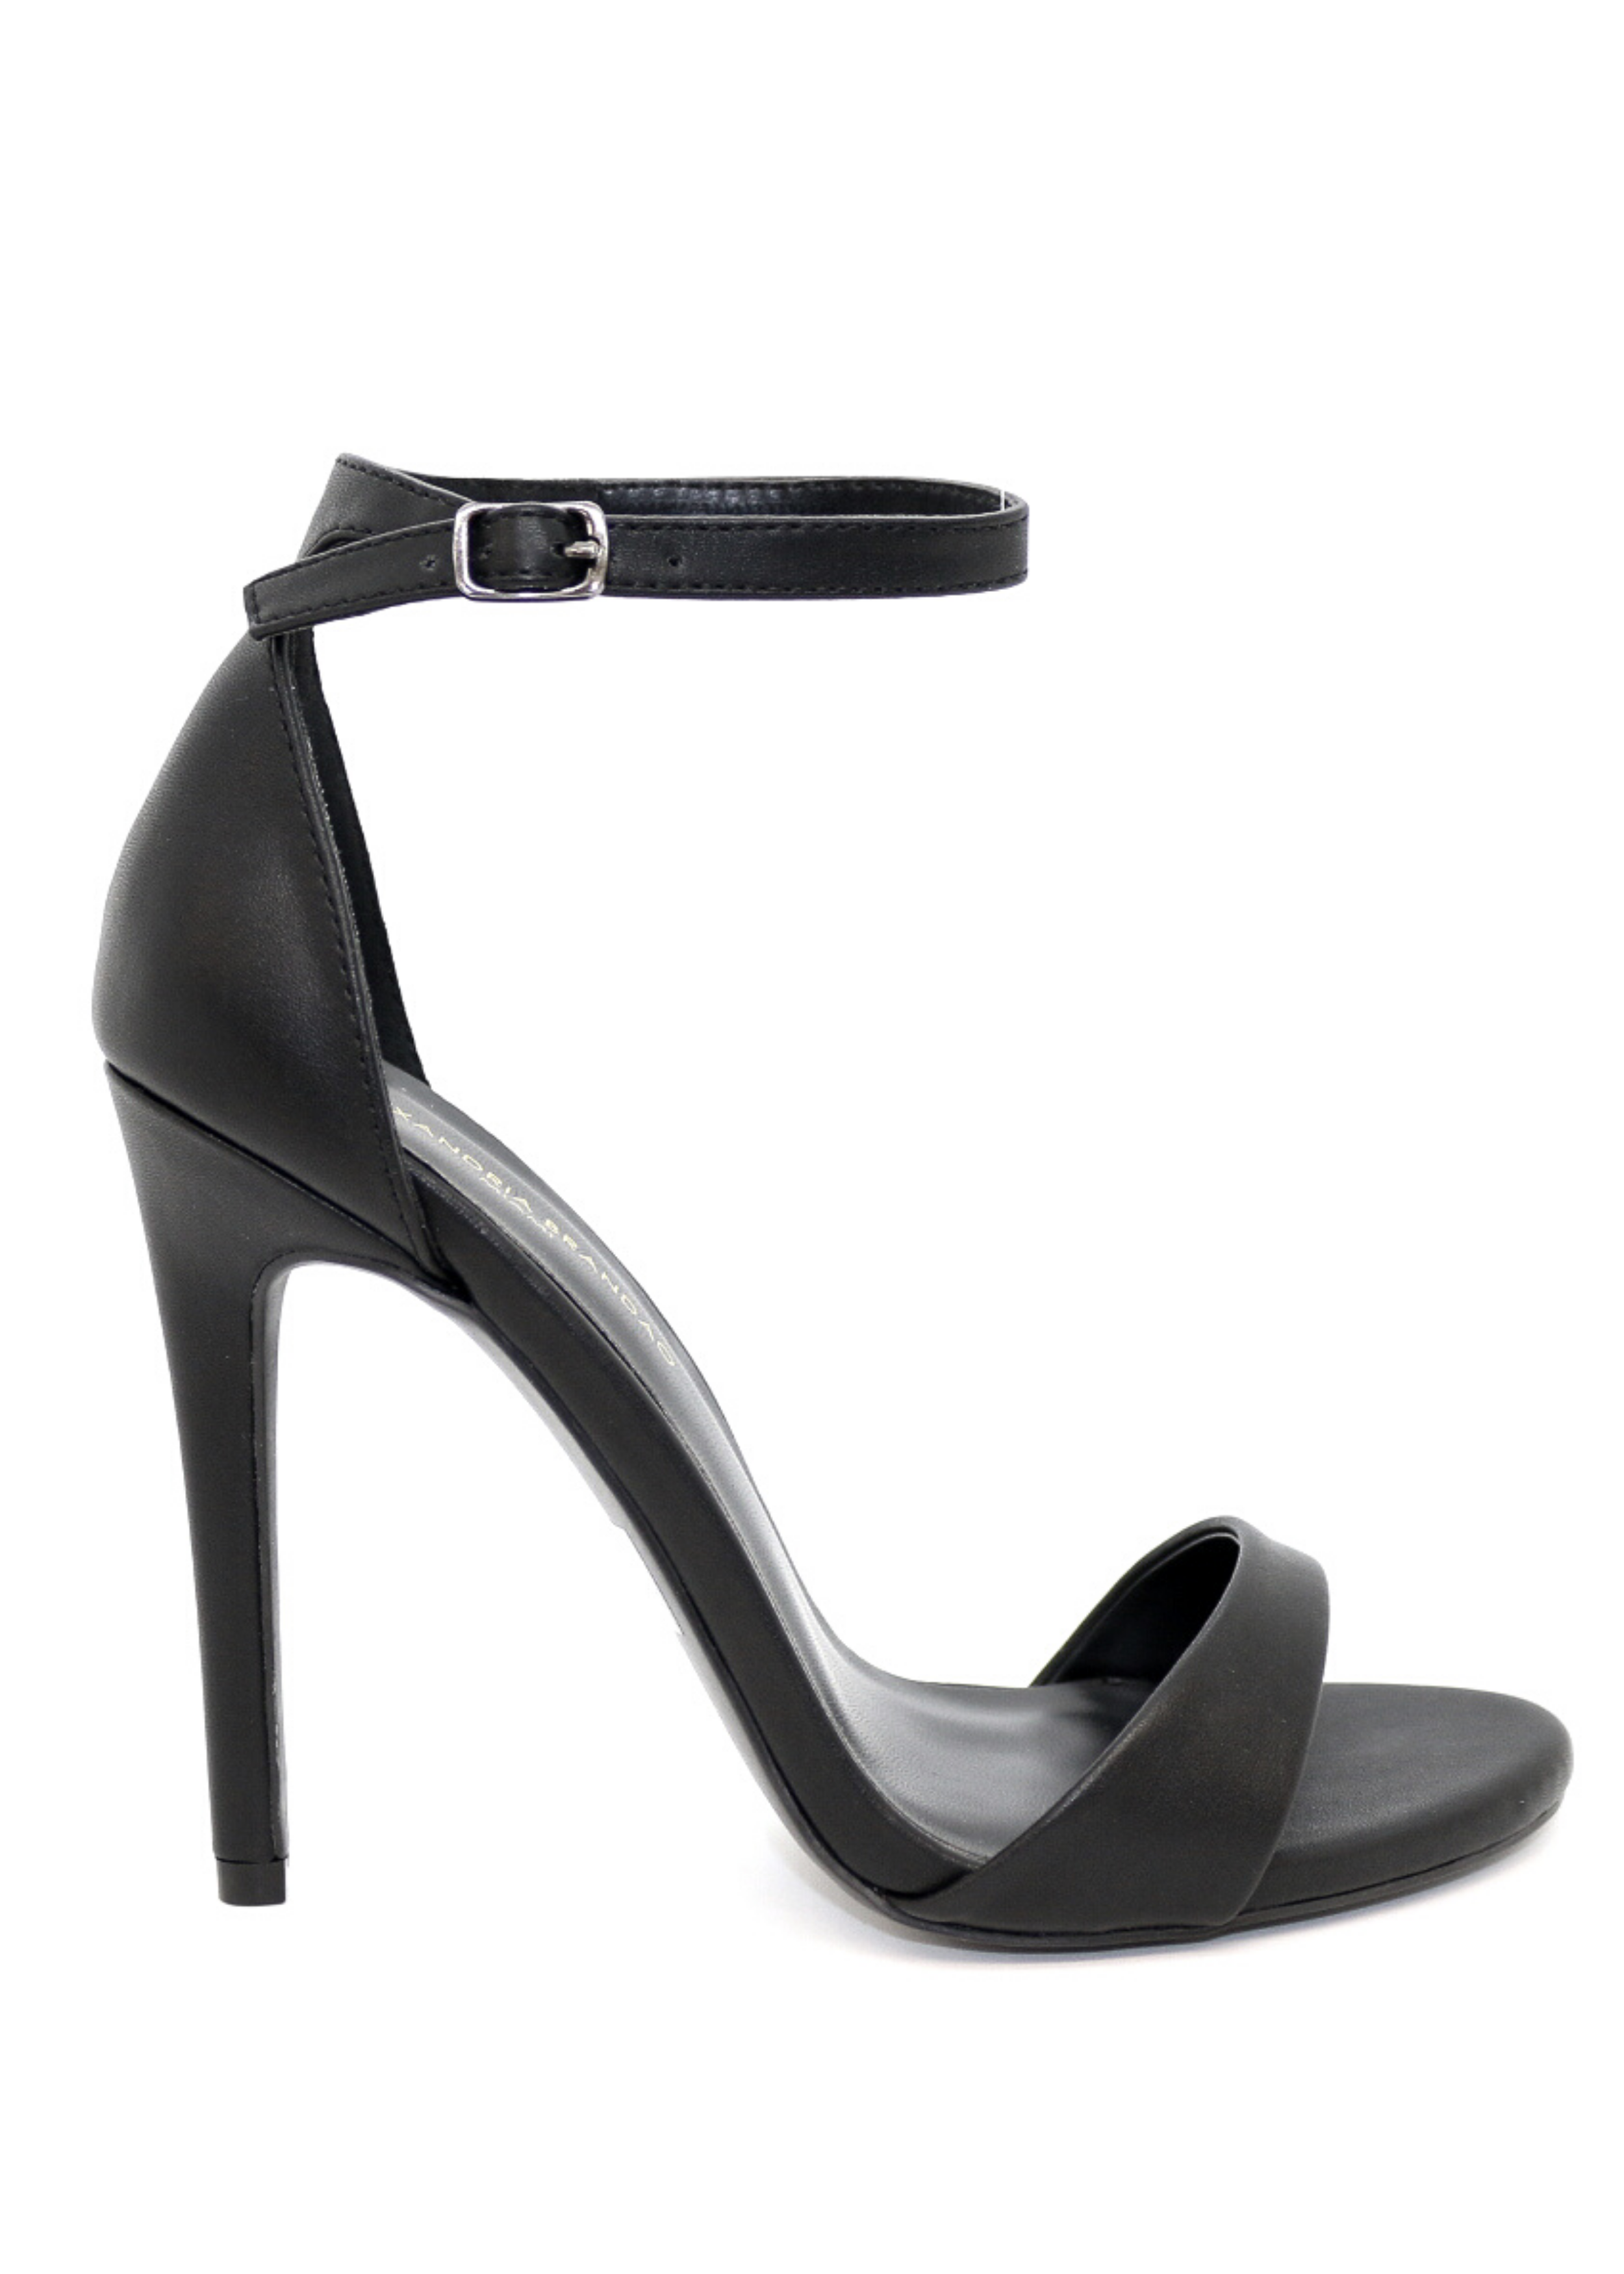 Women's black strappy formal or casual work heel.